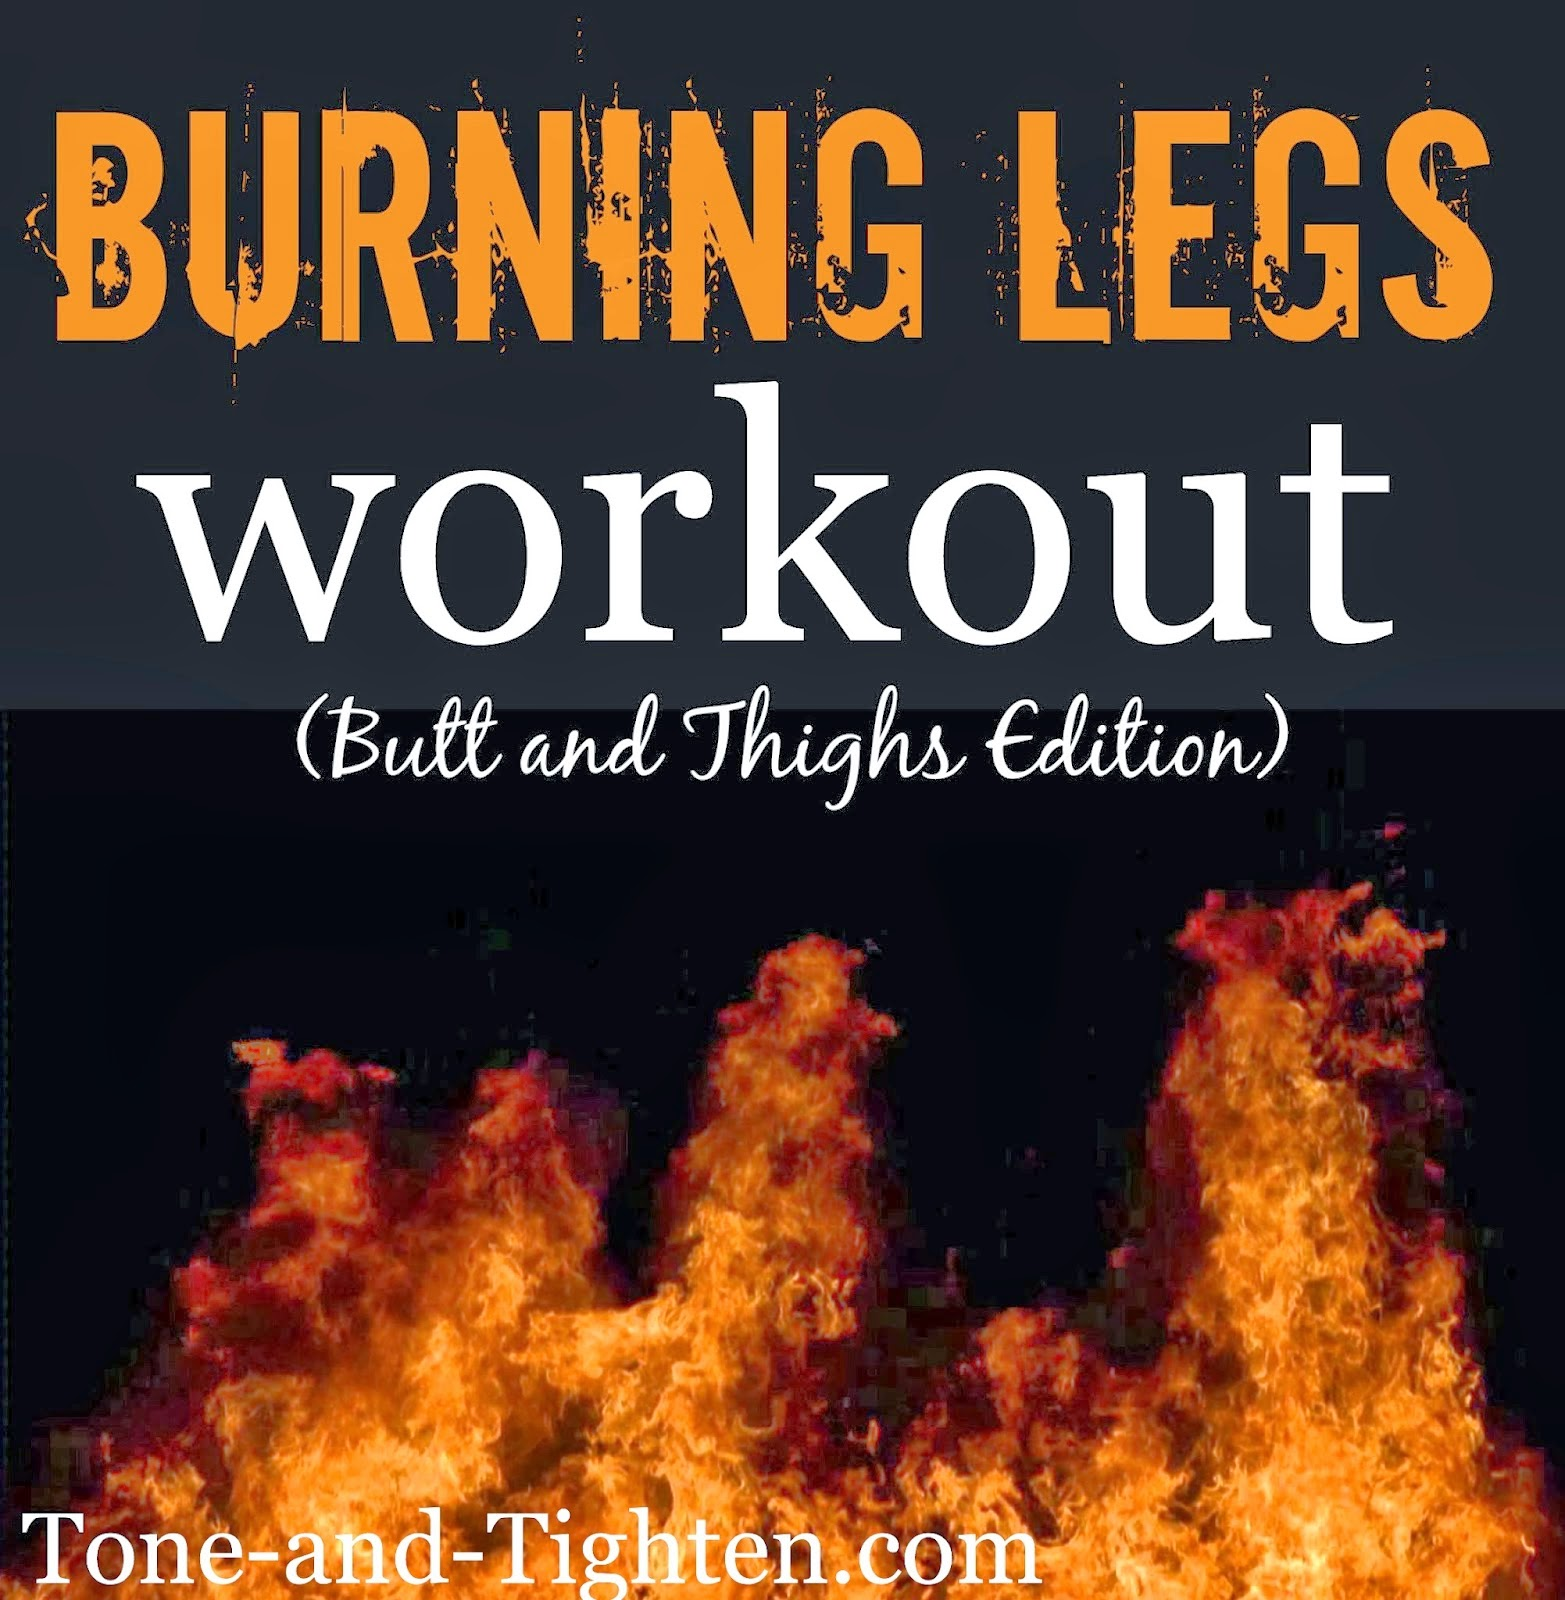 https://tone-and-tighten.com/2014/01/video-workout-burning-legs-workout-butt-and-thighs-edition.html